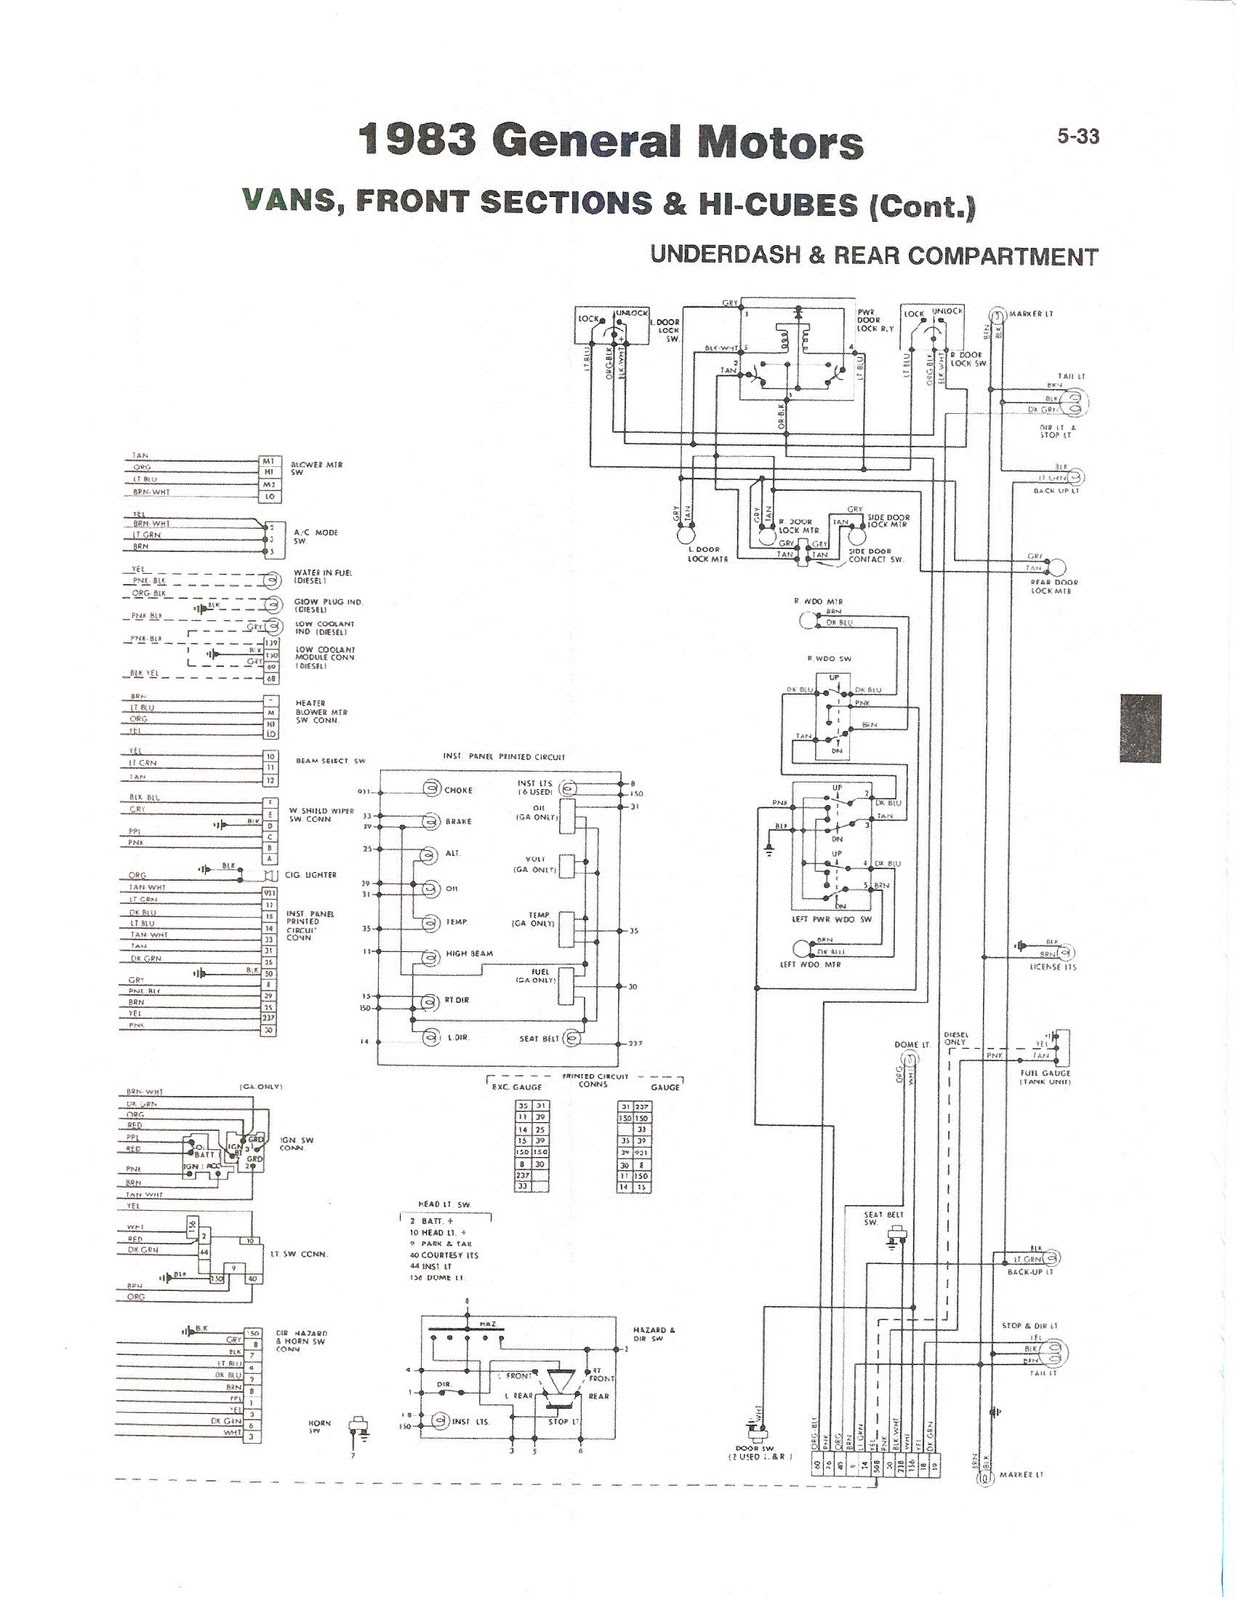 83+GM+Van+front+section+%26+Hi Cubes++underdash+%26+rear+compartment fleetwood rv wiring diagram rv generator wiring diagram \u2022 wiring  at couponss.co